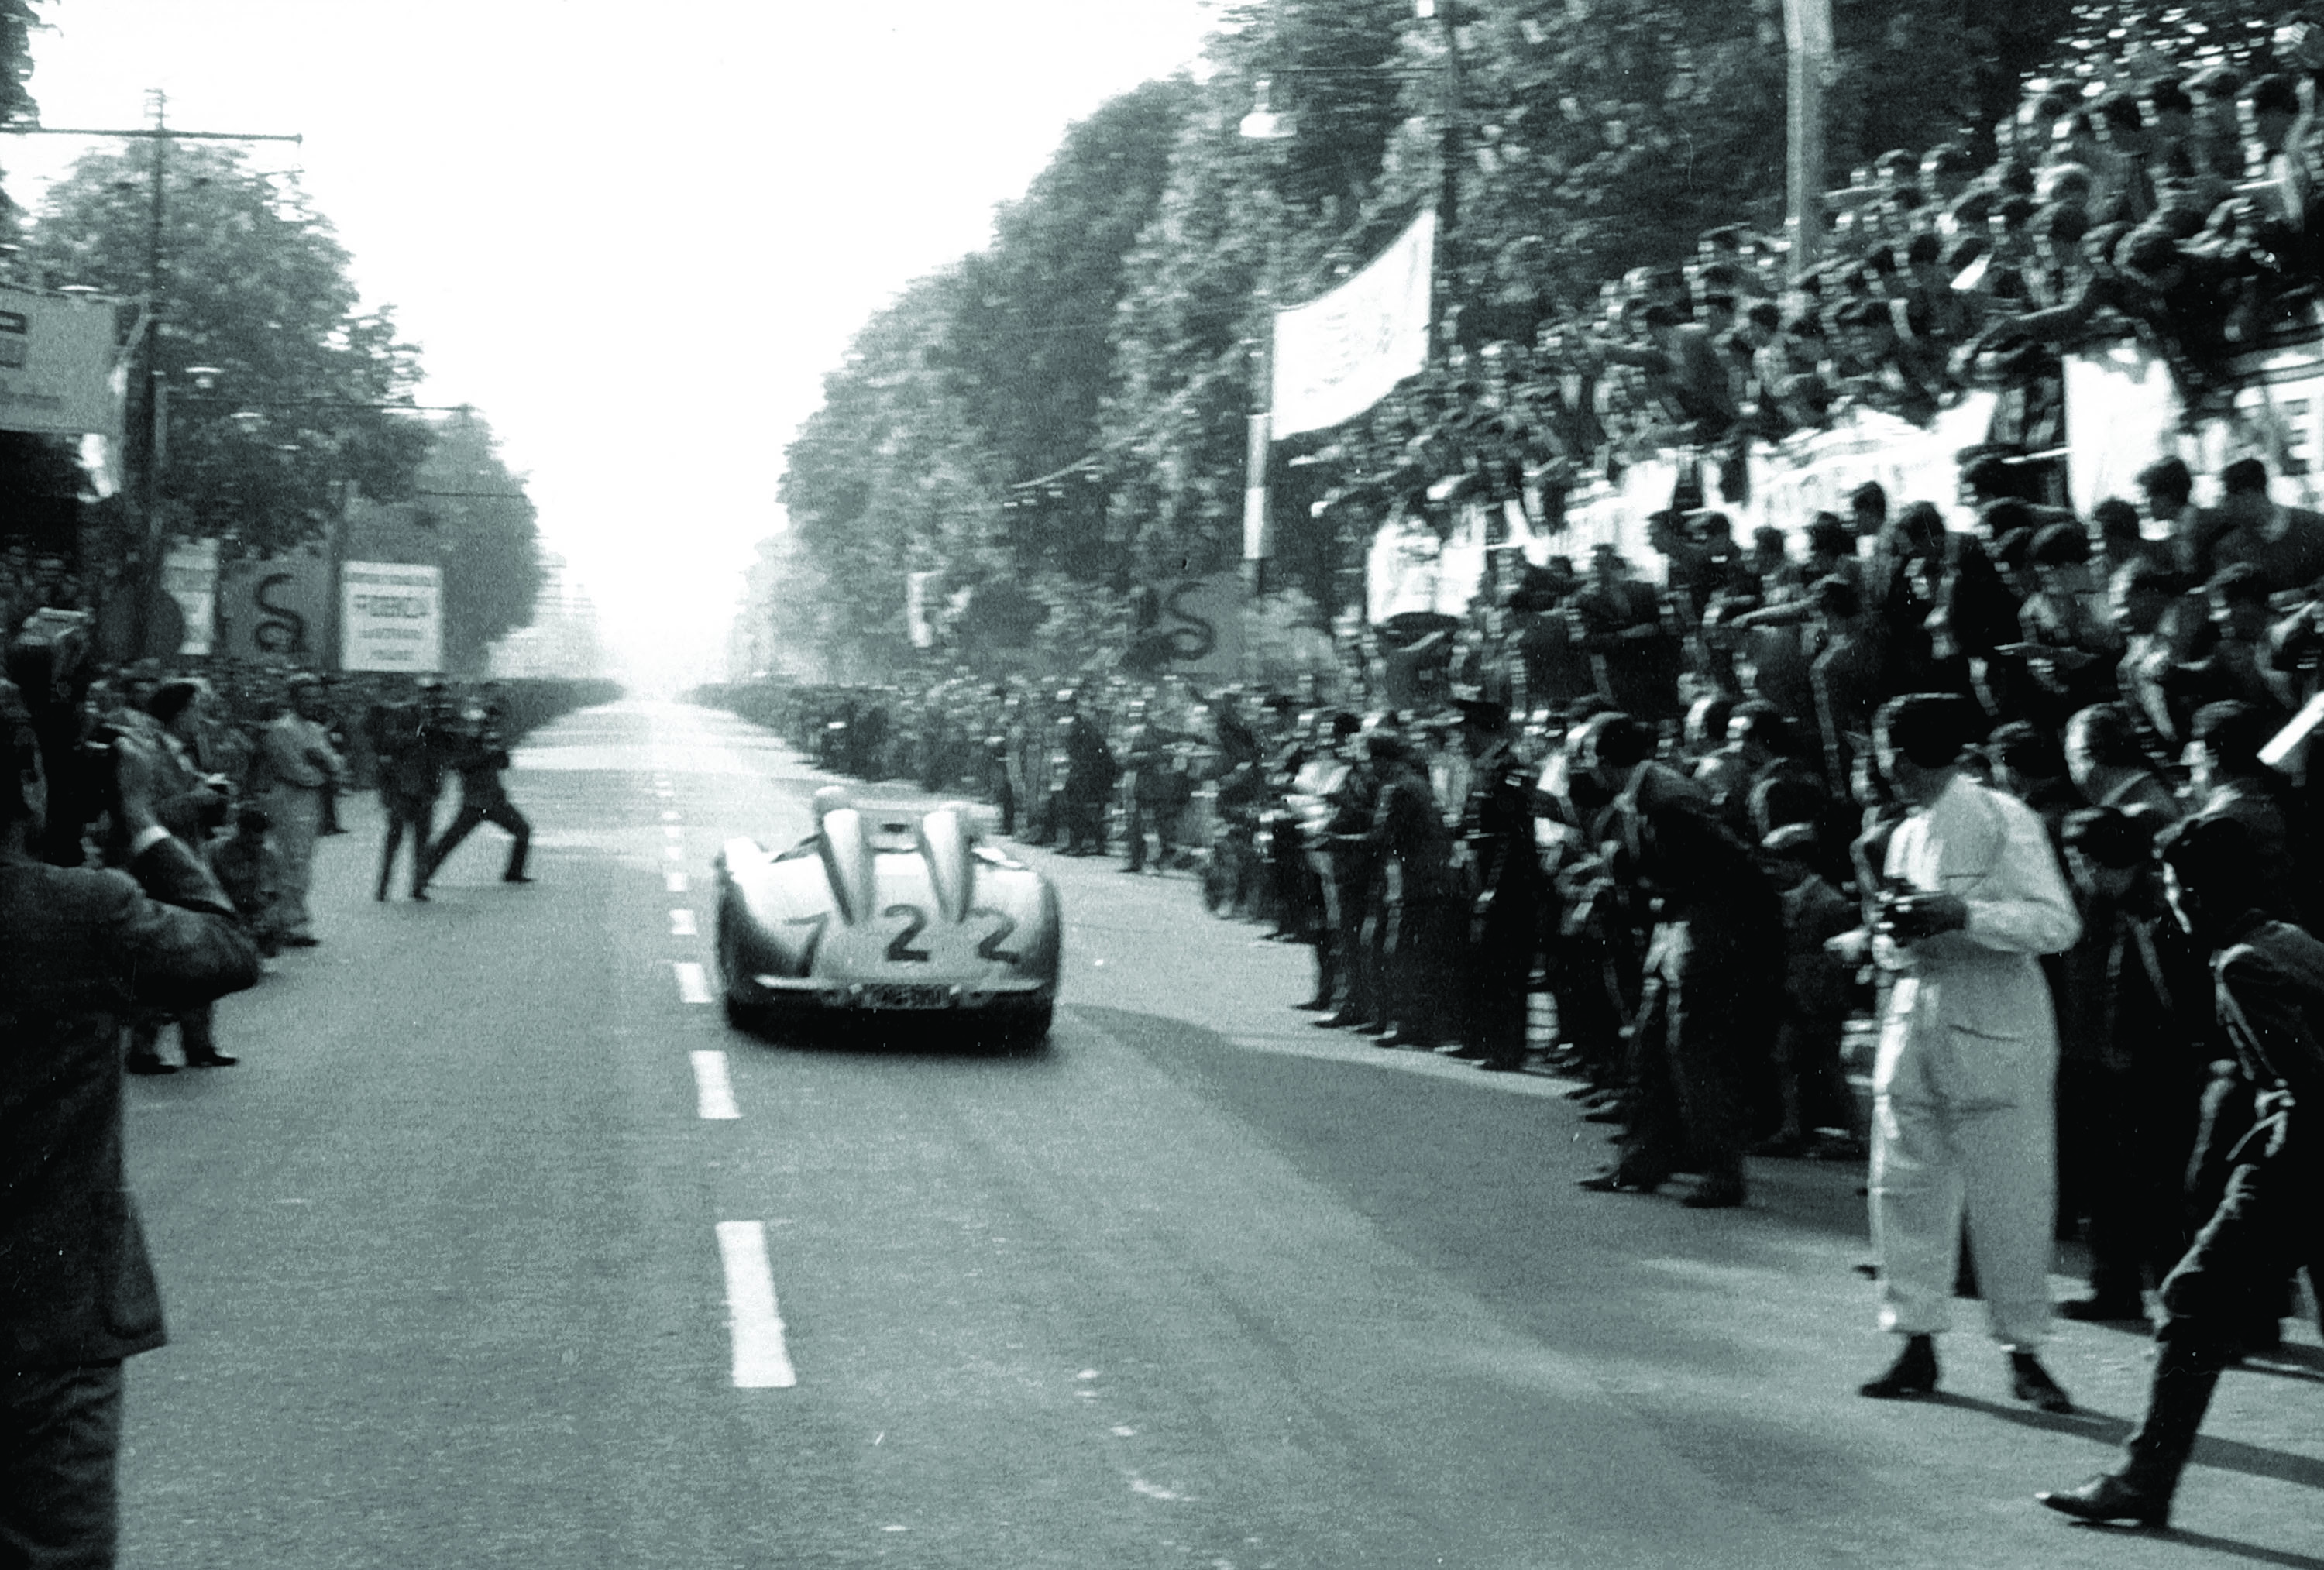 The Moss/Jenkinson Mercedes races past spectators at 1955 Mille Miglia Italy